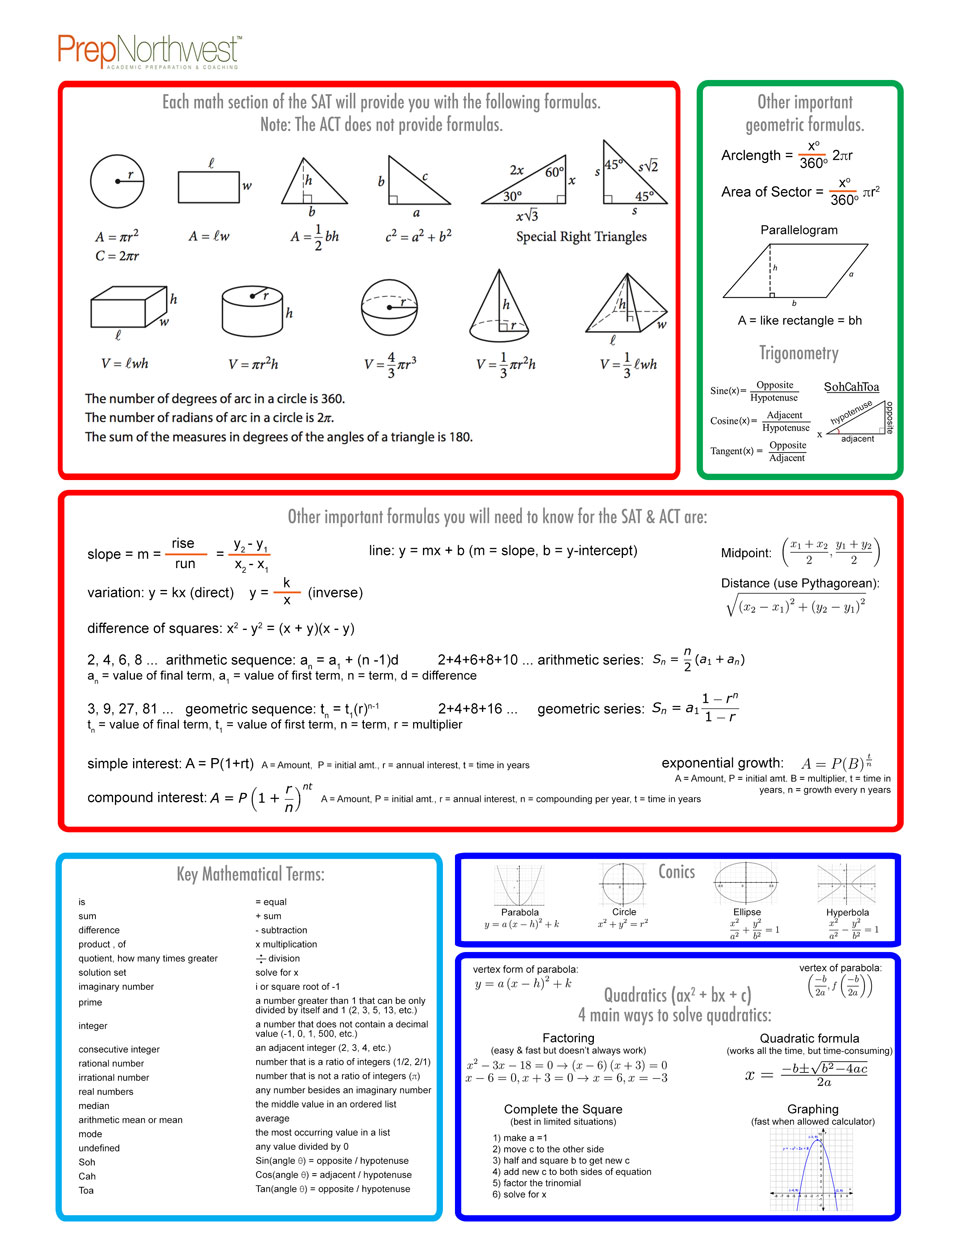 Worksheets Act Prep Worksheets prepnorthwest math help rockin the acts and sats require knowing a lot of background knowledge download your free sat act formulas sheet get to studying yo